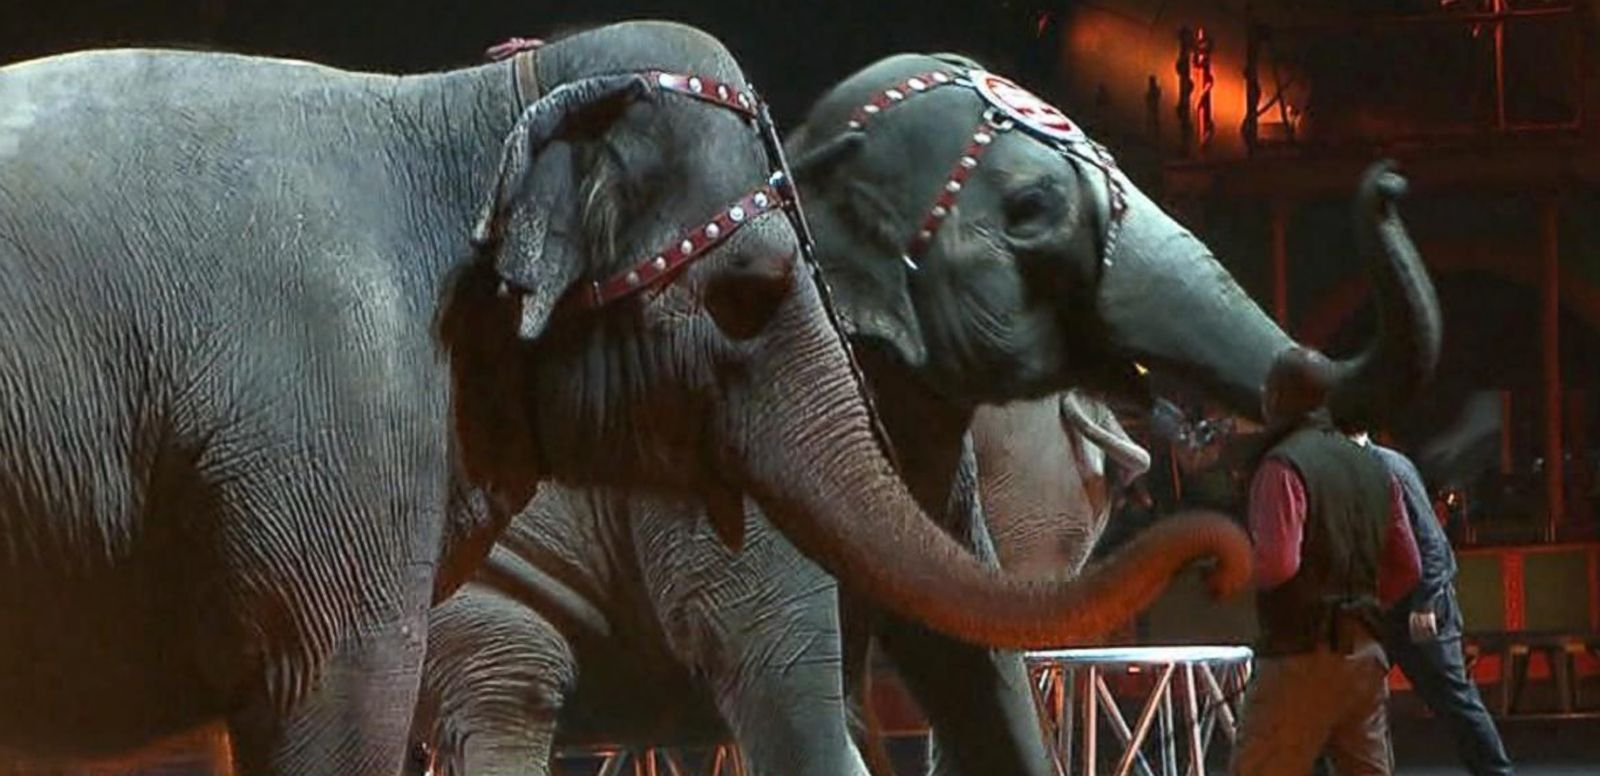 VIDEO: Could Elephants Hold The Secret To Curing Cancer?